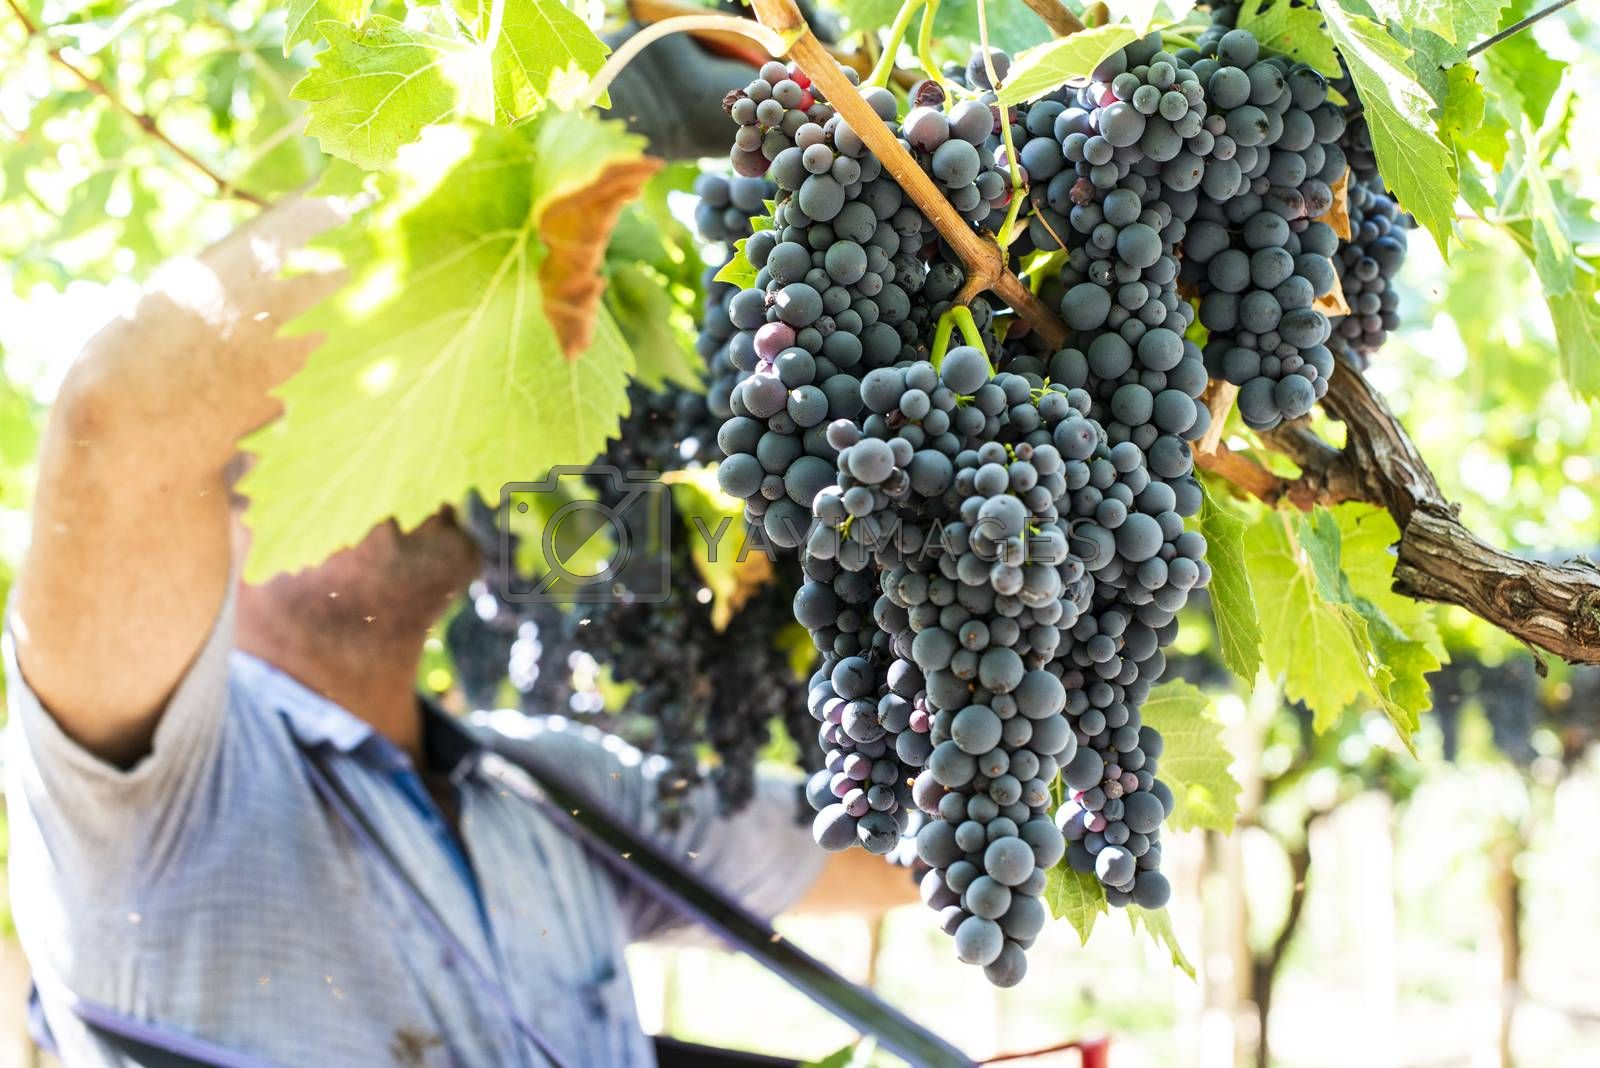 Workers picking red grapes. Harvesting grape for wine making.